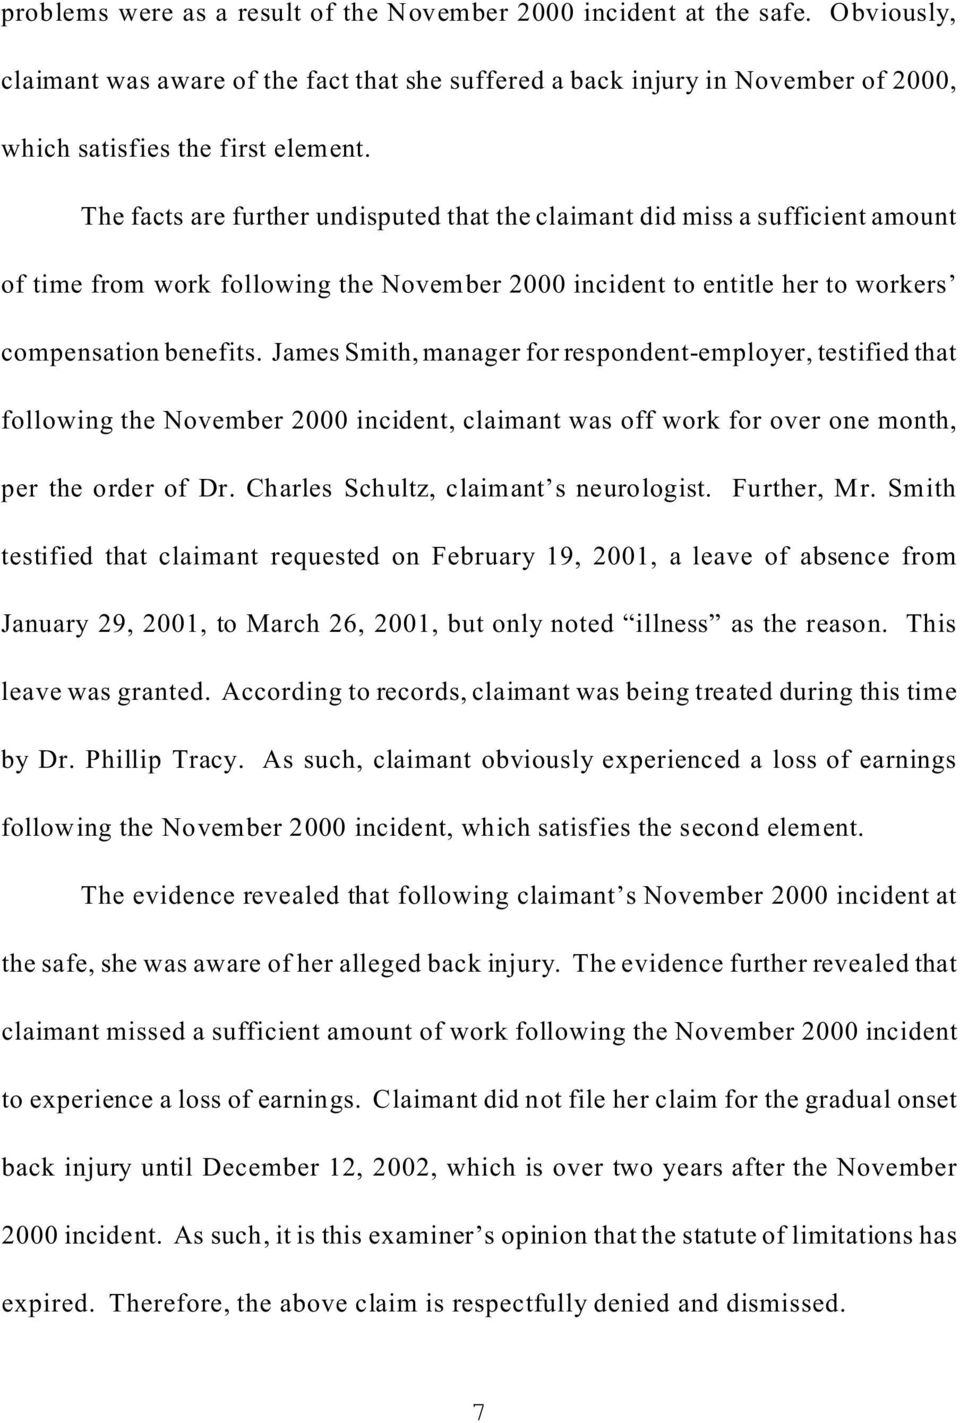 James Smith, manager for respondent-employer, testified that following the November 2000 incident, claimant was off work for over one month, per the order of Dr.